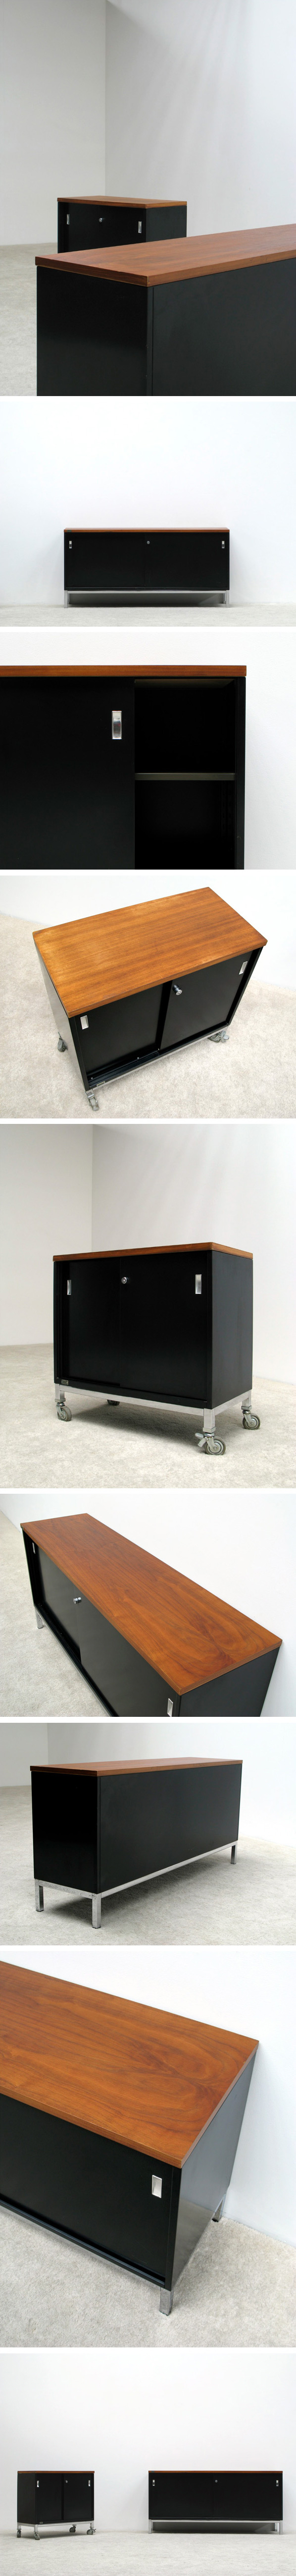 Industrial metal office sideboards Large